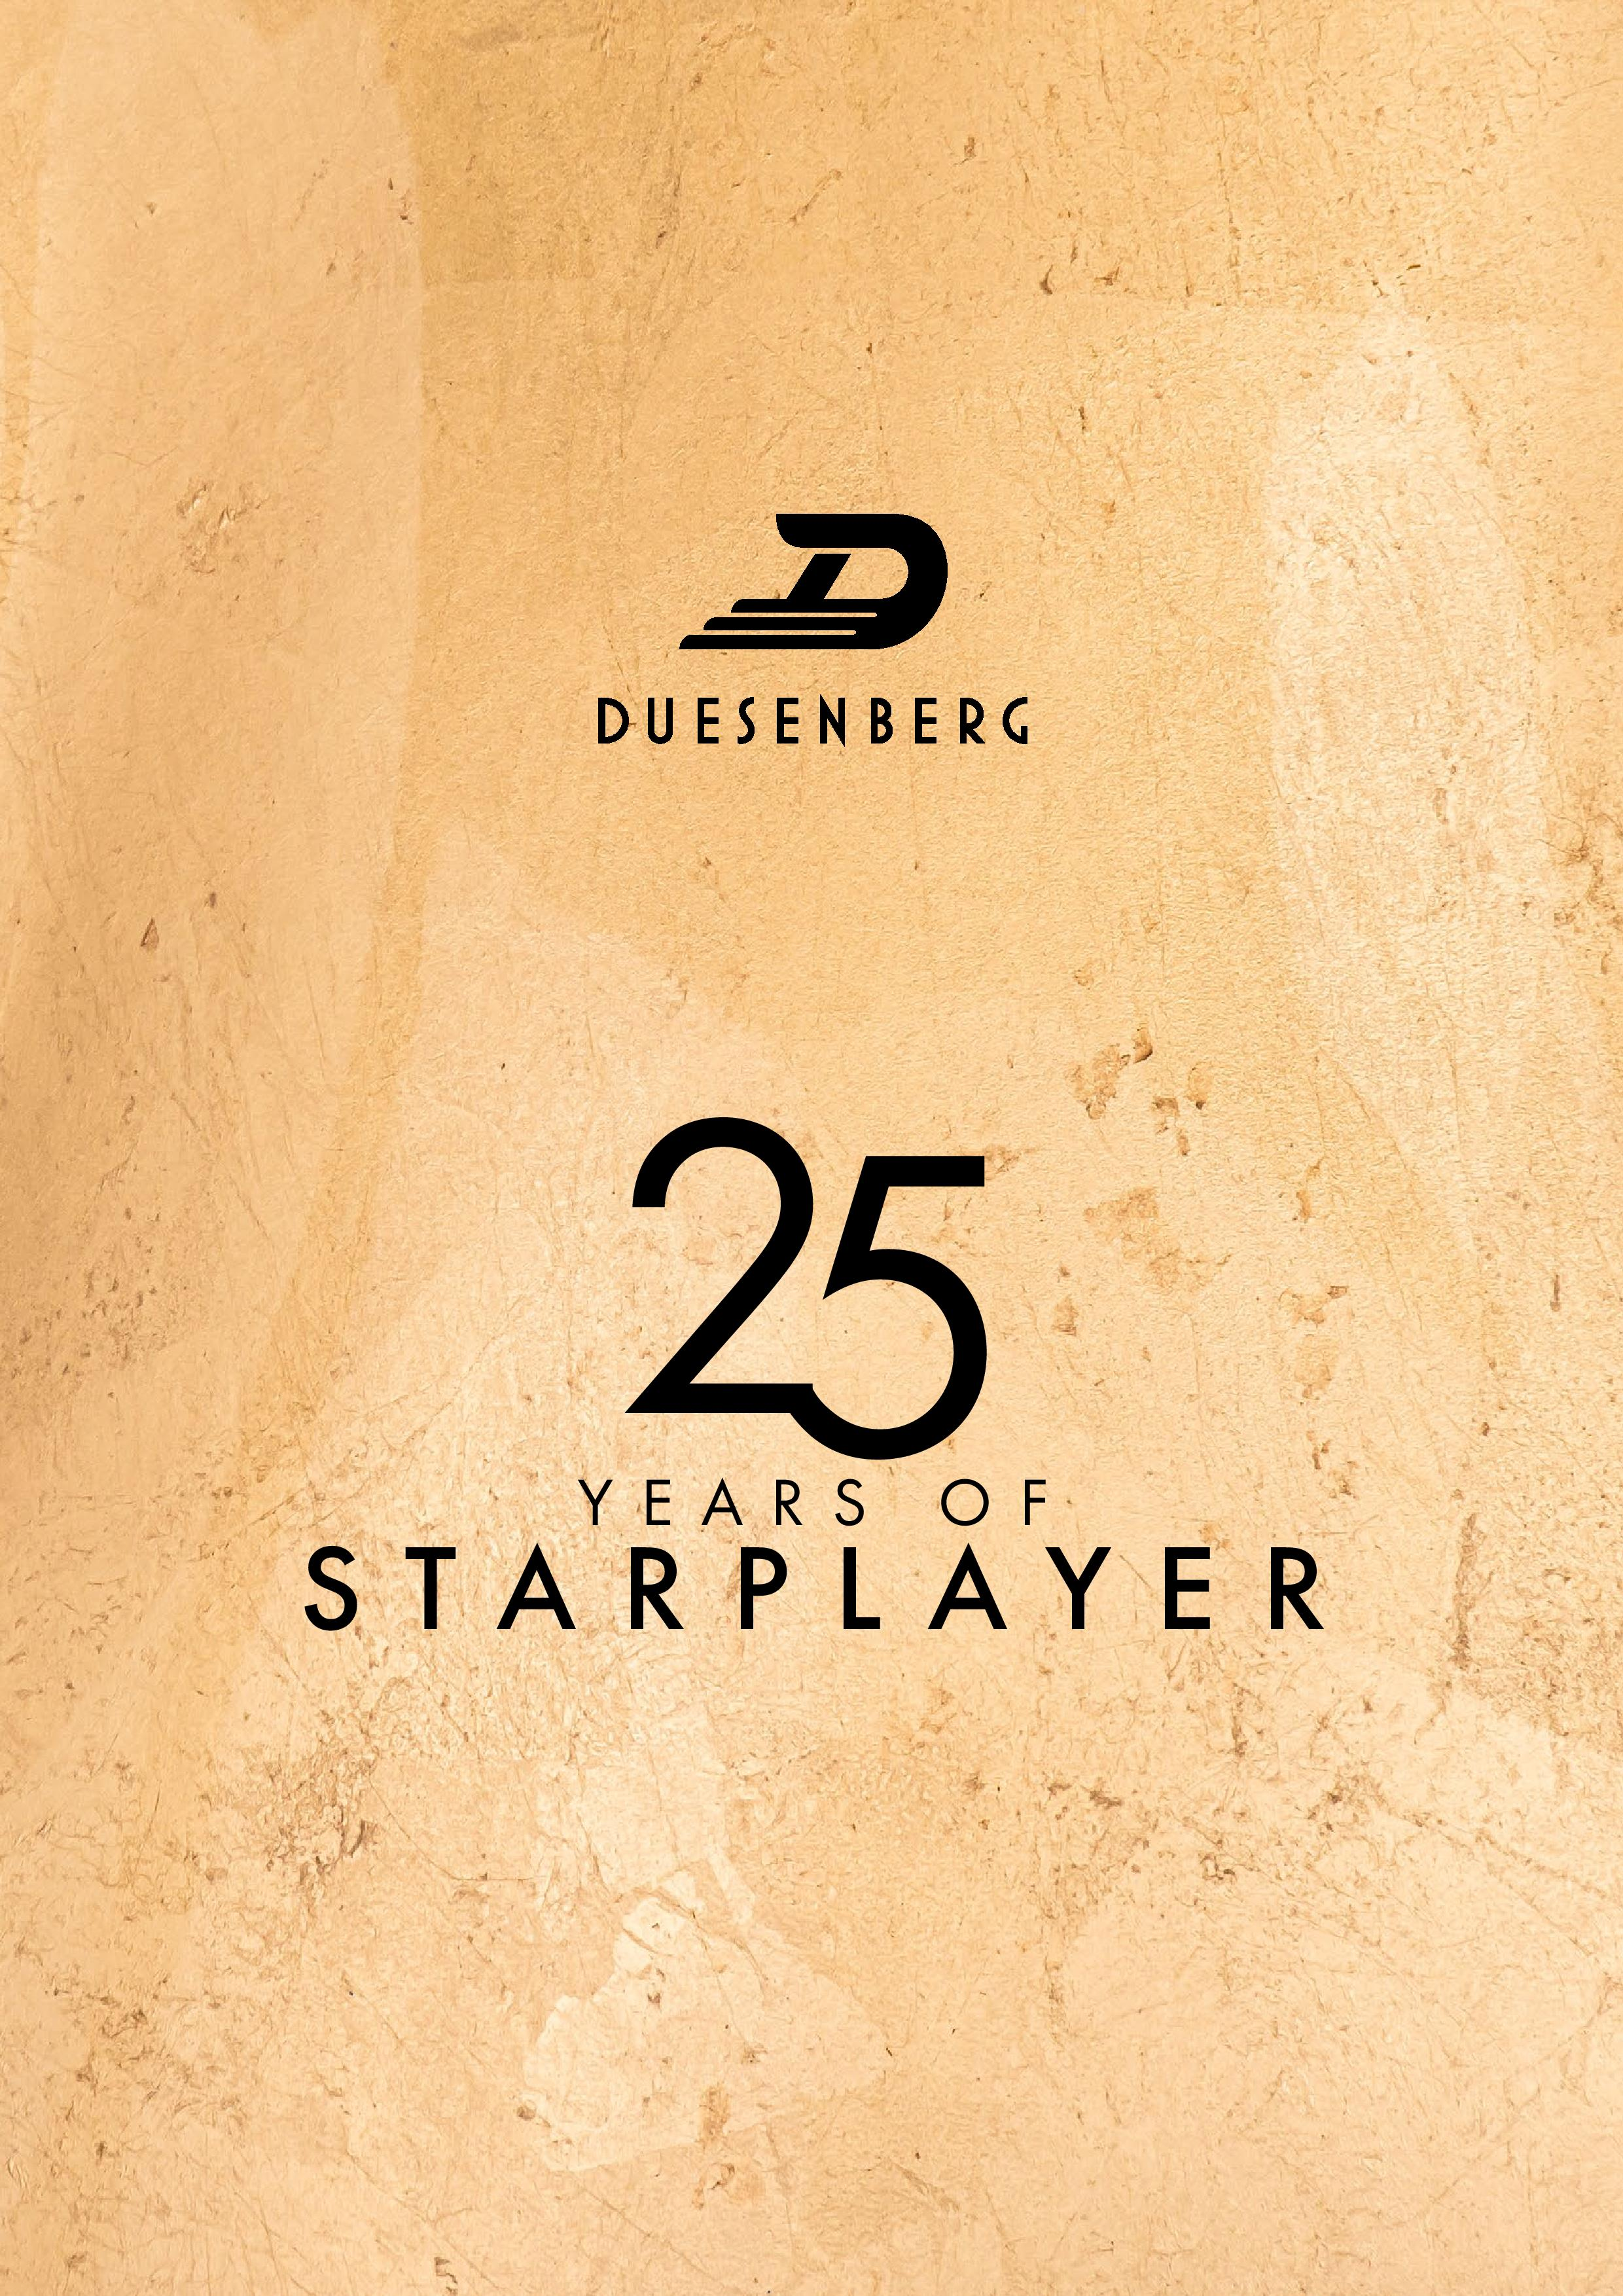 Duesenberg_25thAnniversary_ProductOvervi